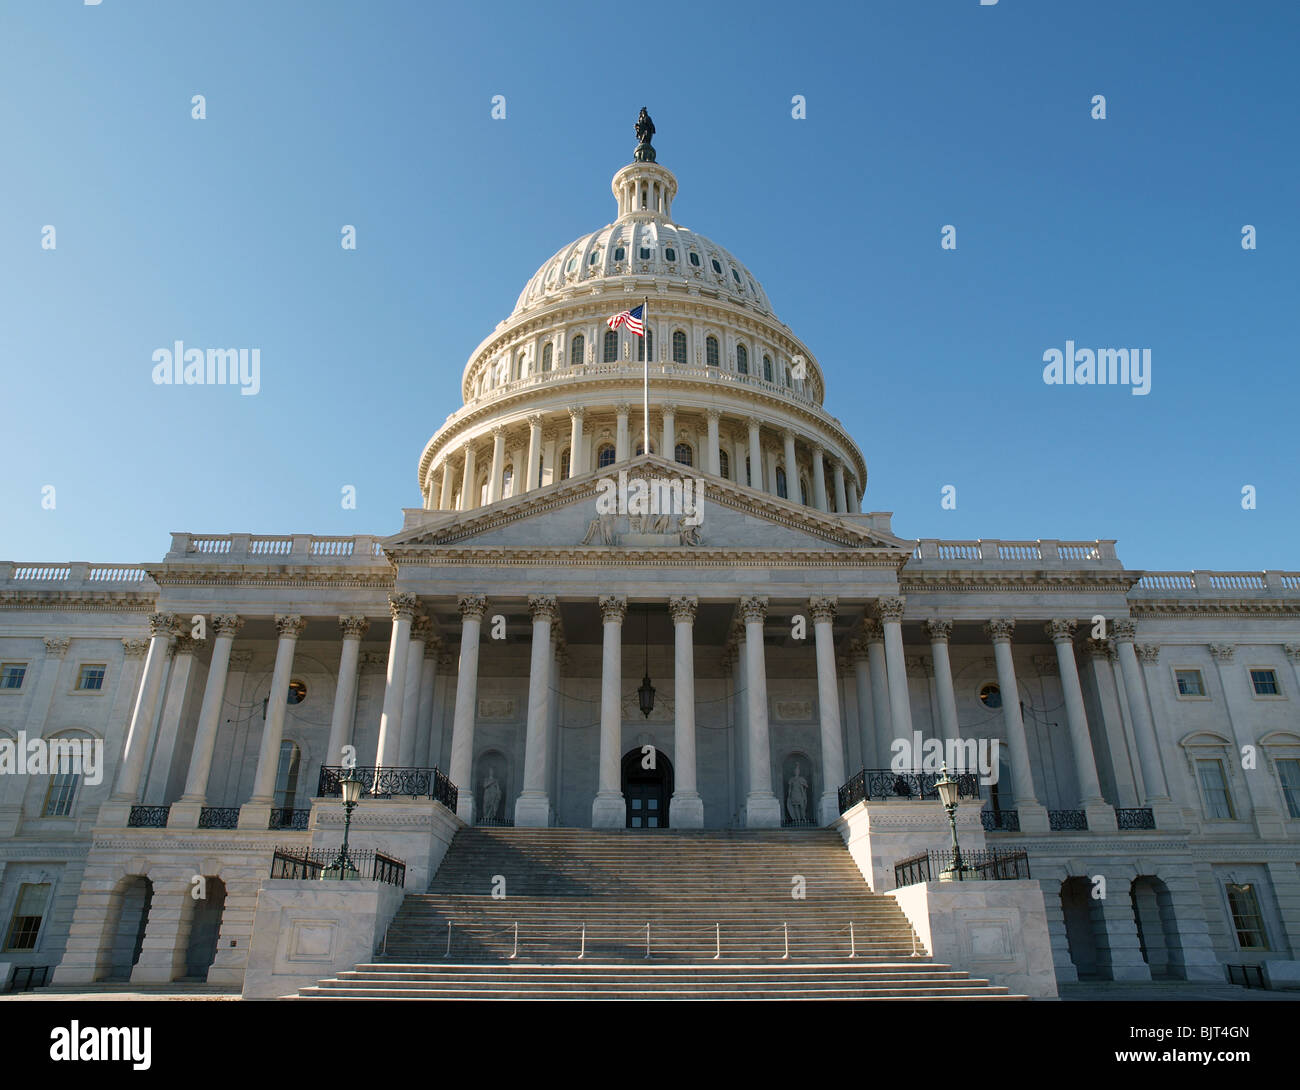 East Side Of The United States Capitol Building In Washington Dc Stock Photo Alamy